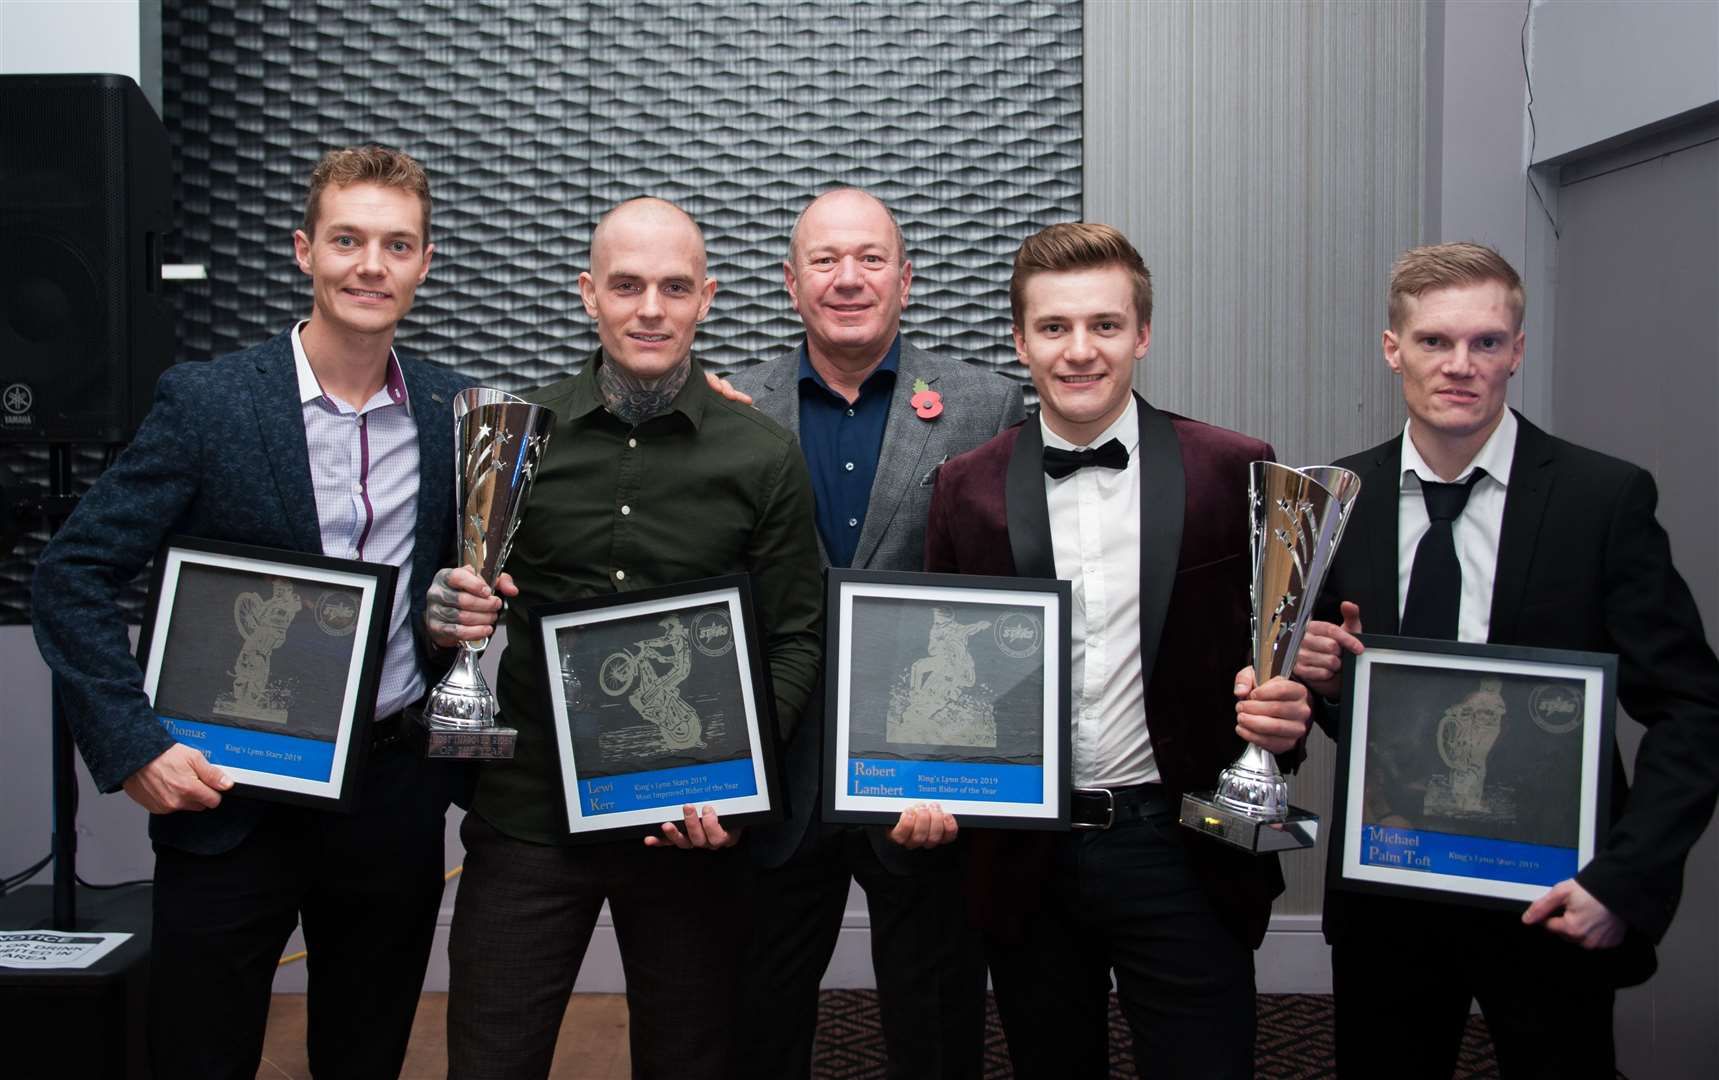 At the King's Lynn Stars presentation night are (from left) Thomas Jorgensen, Most Improved Rider of the Year Lewis Kerr, Co-Promoter Robin Brundle, Team Rider of the Year Robert Lambert and Michael Palm-Toft.. (20756384)